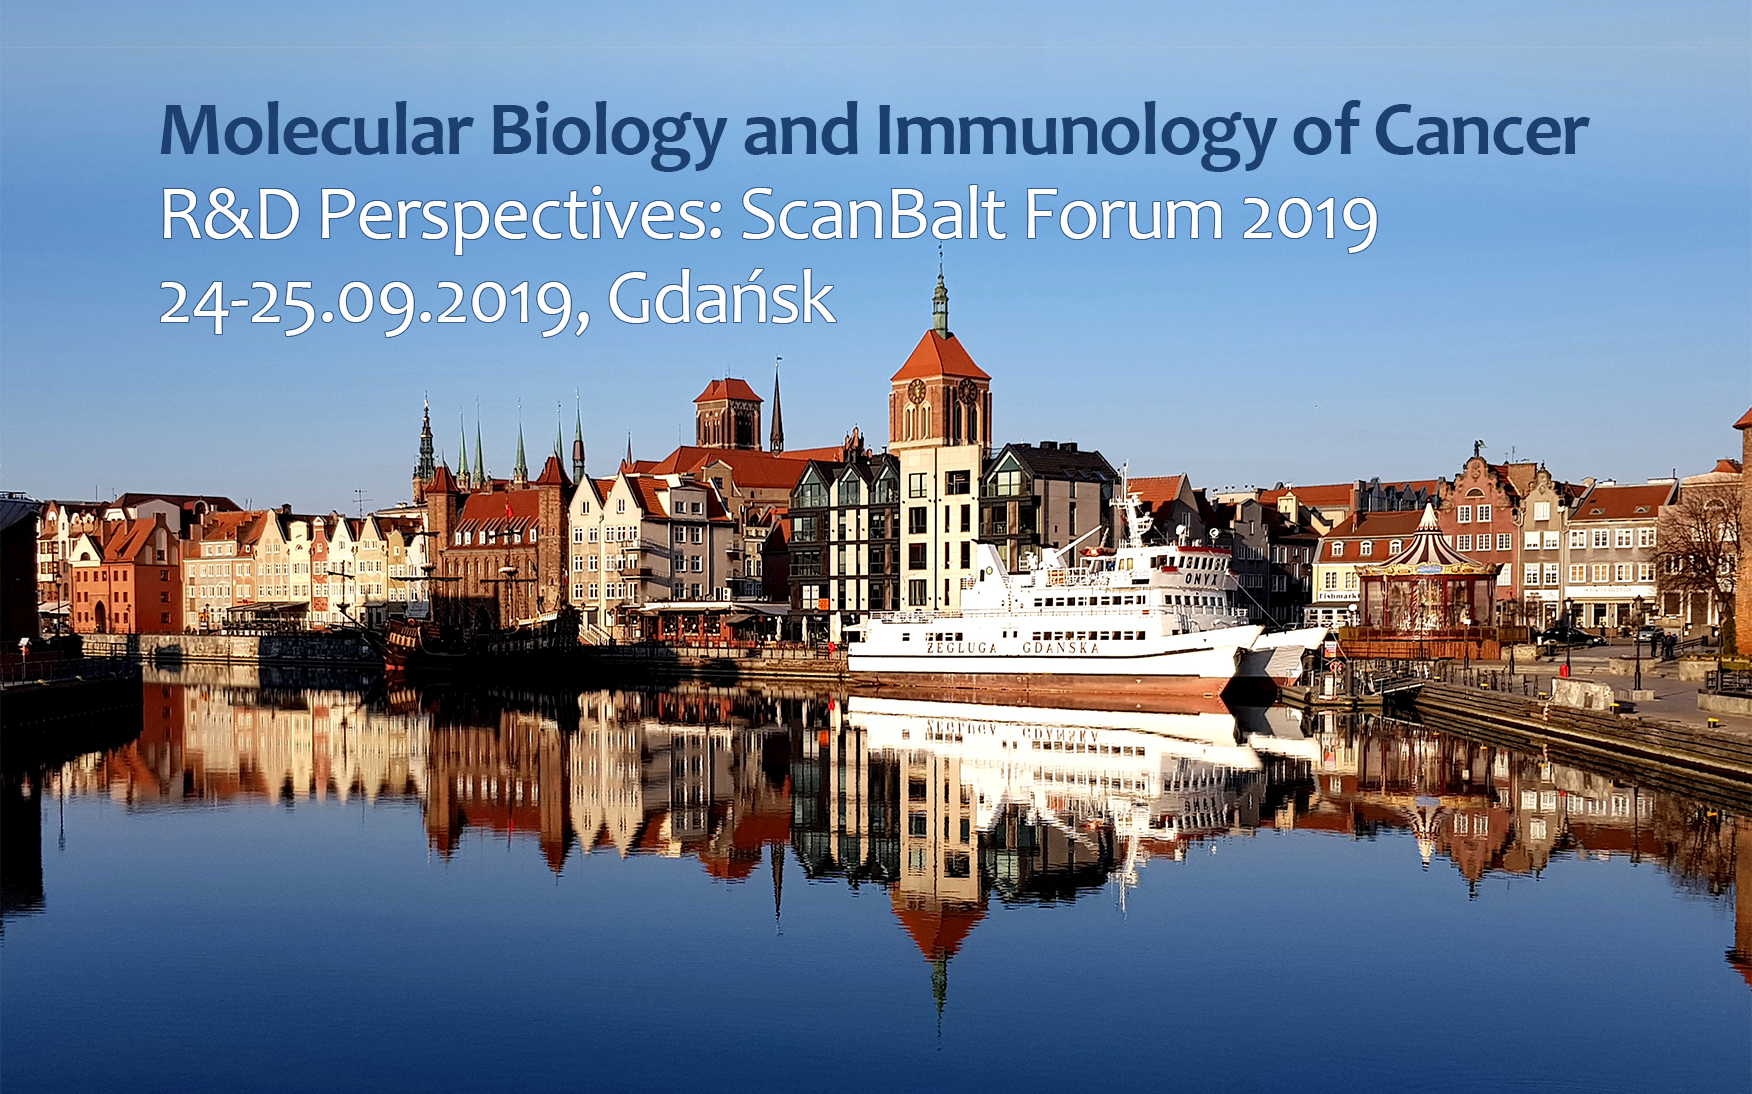 Molecular Biology and Immunology of Cancer – R&D perspectives: ScanBalt Forum 2019, 24-25 S